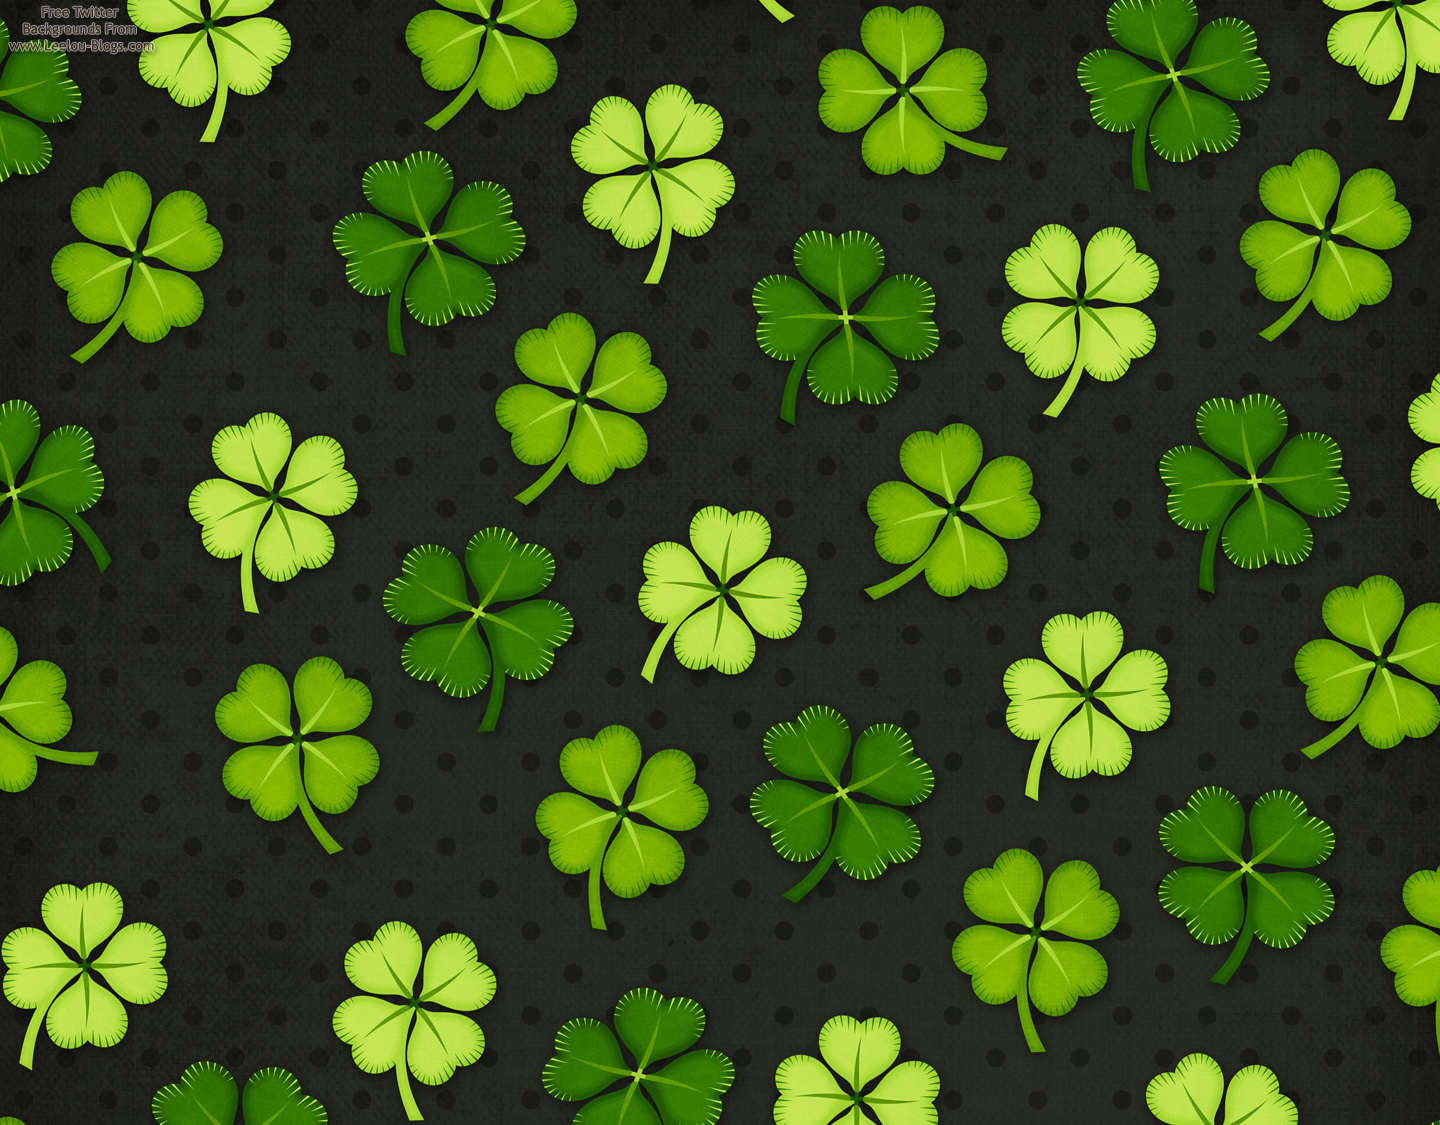 download St Patricks Day Twitter Backgrounds Leelou Blogs 1440x1125